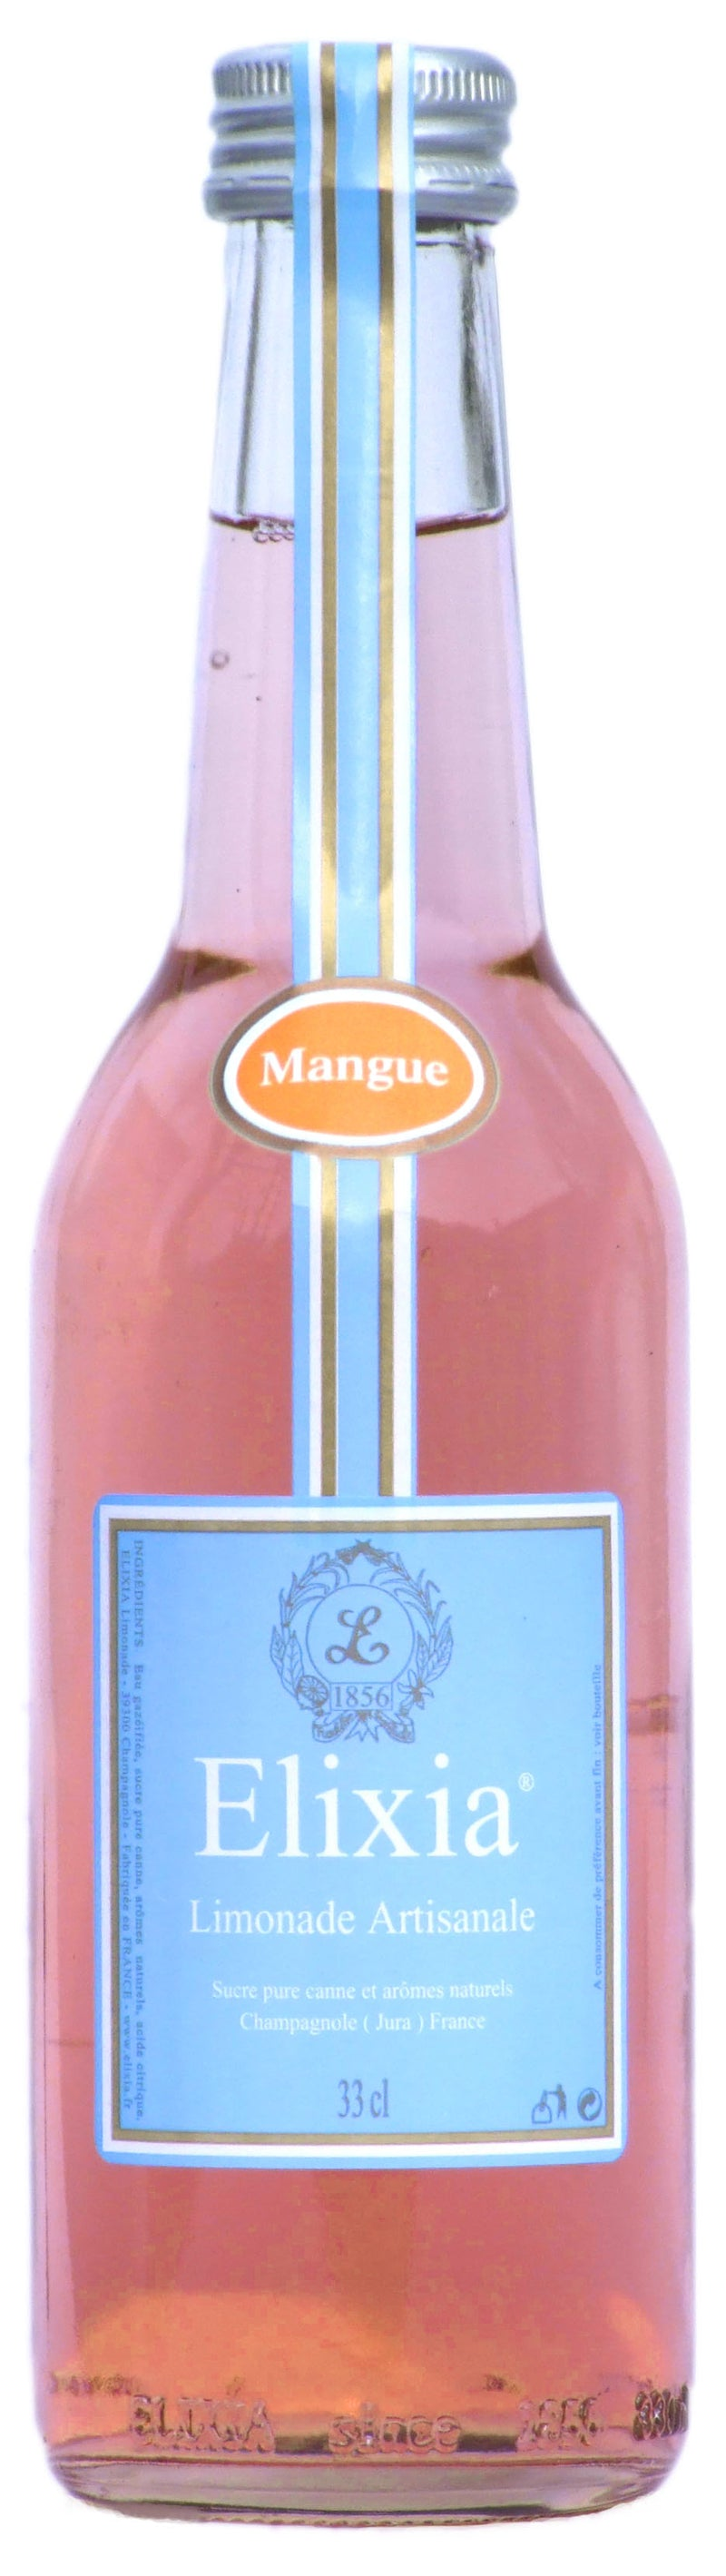 Elixia Mangue verre 33cl